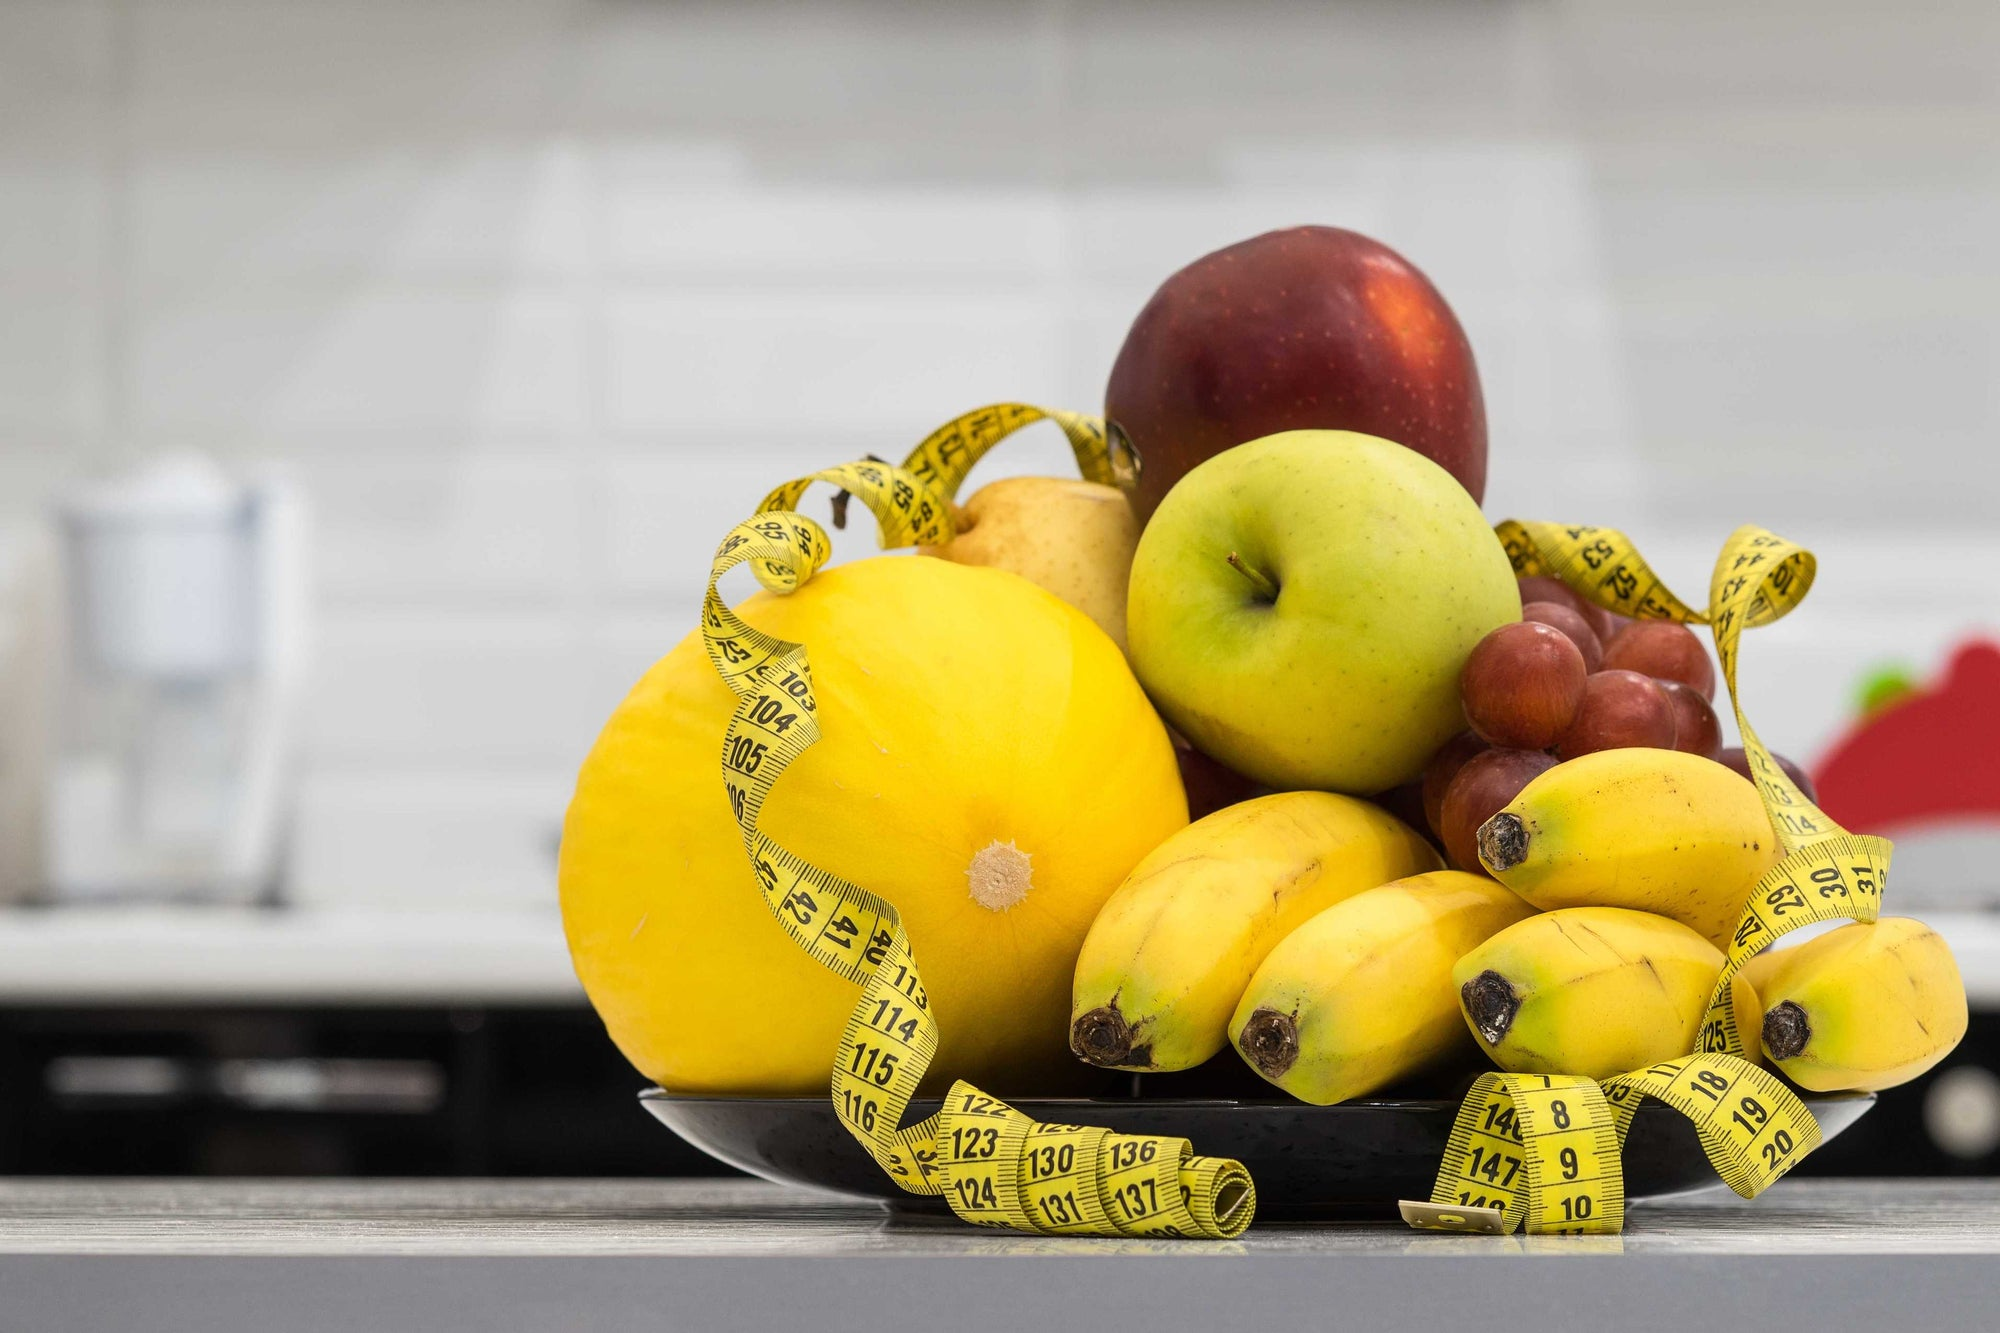 How Can Eating Fruit Help Me Lose Weight?